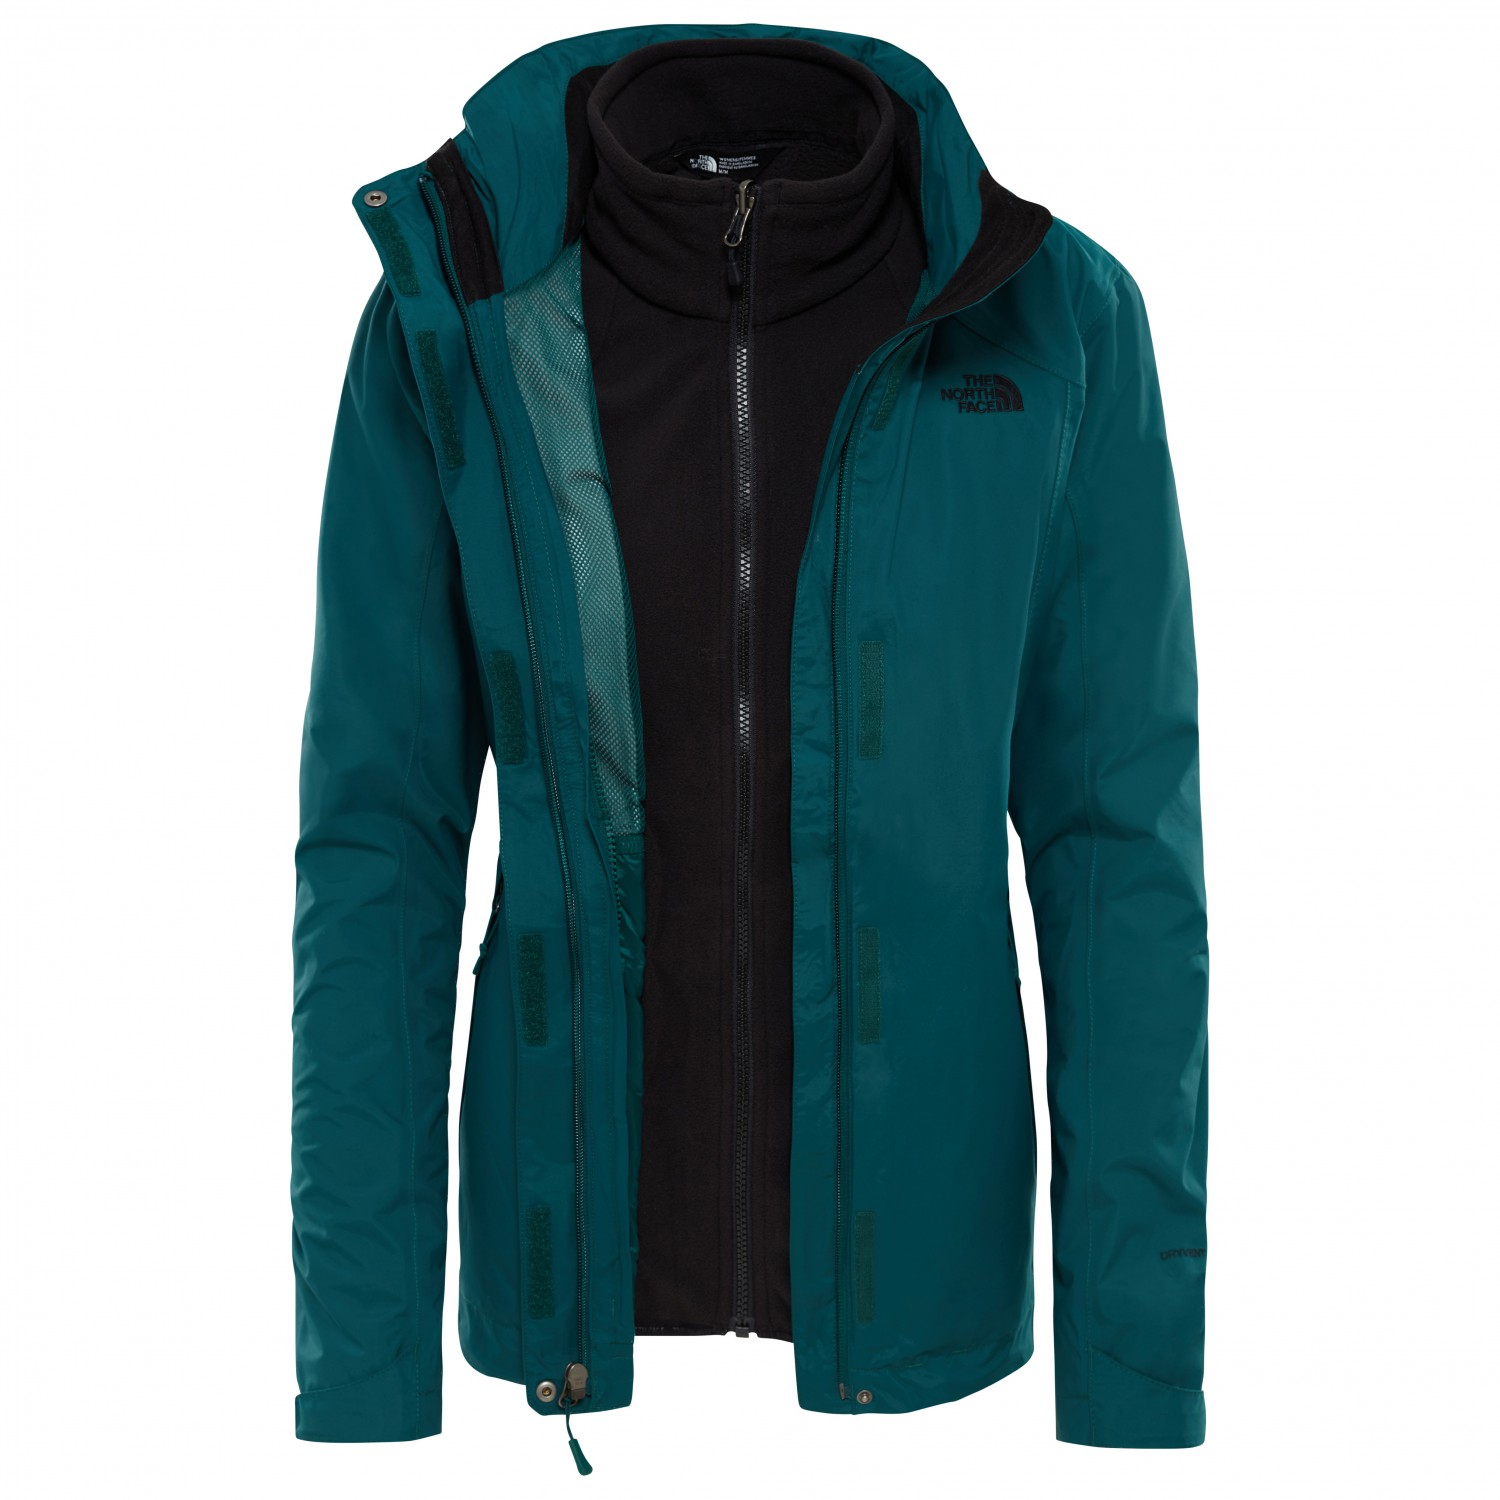 The North Face Evolution II Triclimate 3 in 1 jacket